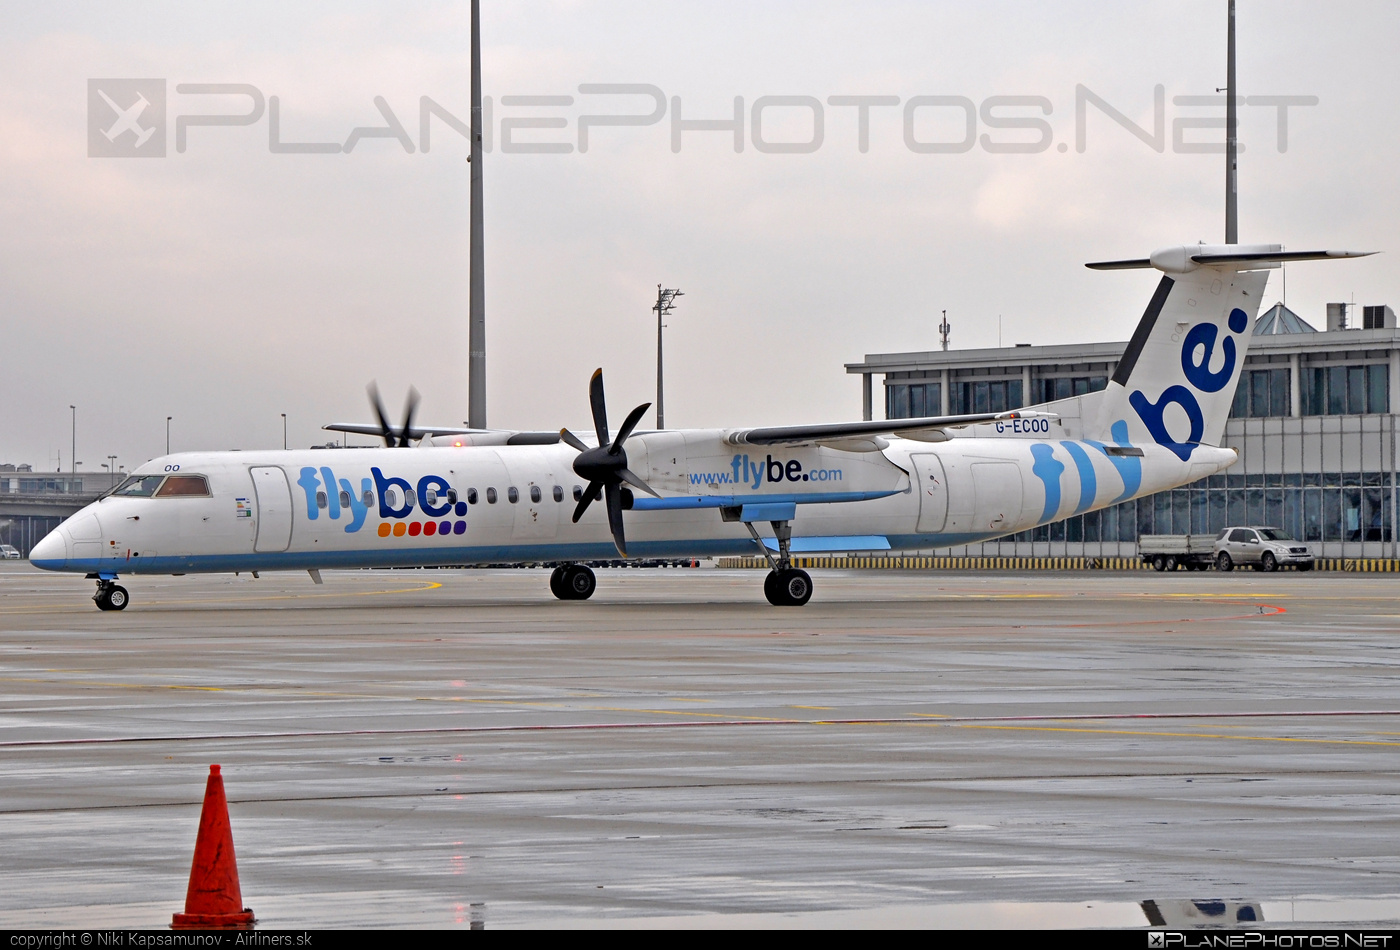 Bombardier DHC-8-Q402 Dash 8 - G-ECOO operated by Flybe #bombardier #dash8 #dhc8 #dhc8q402